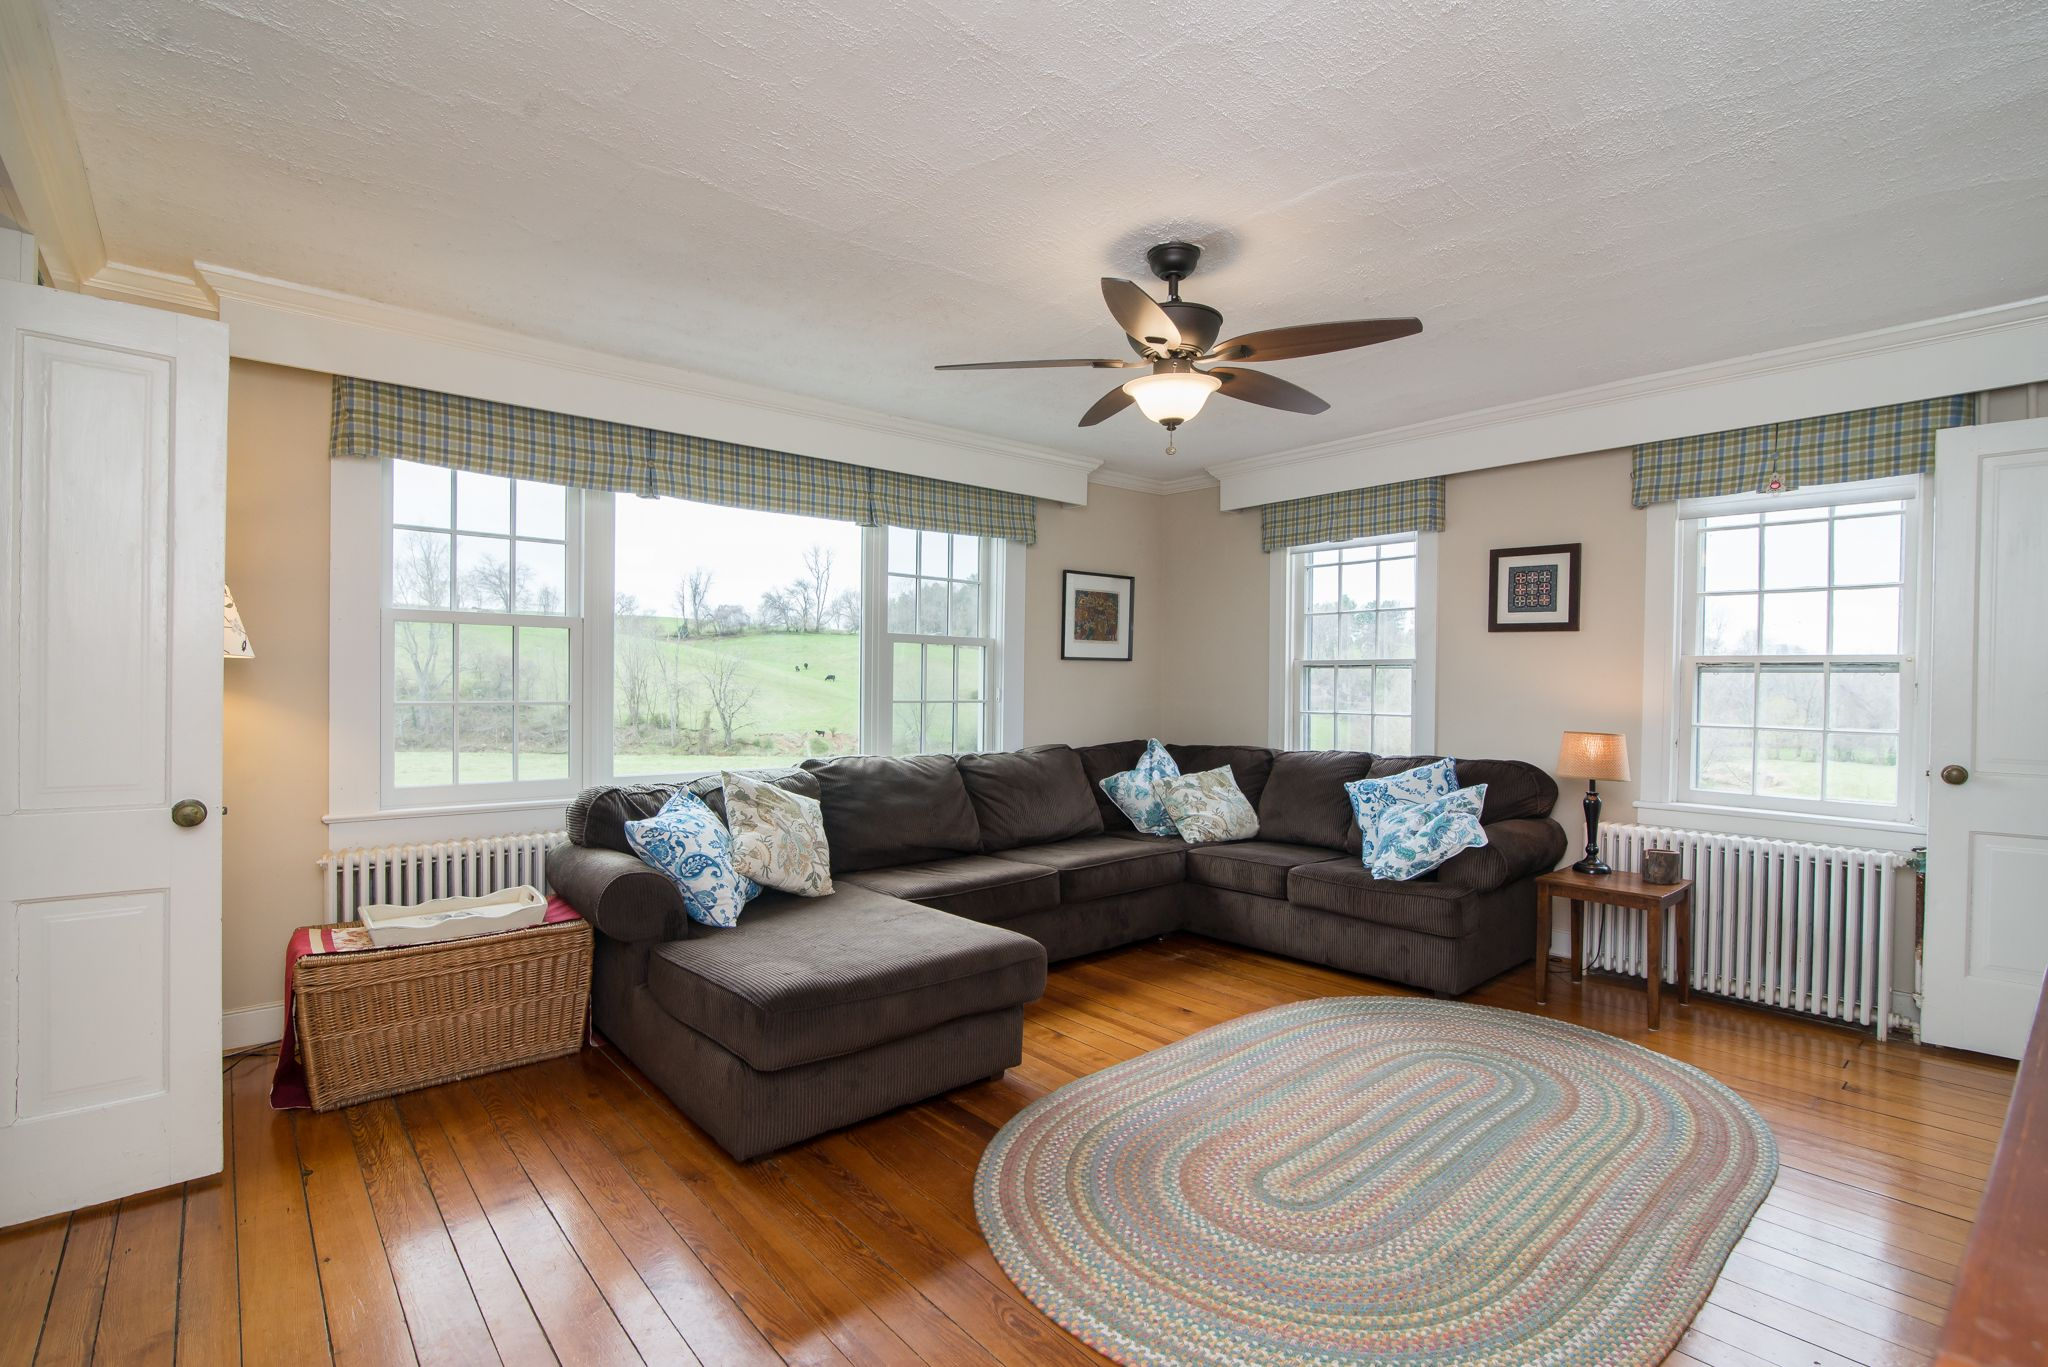 Antique Farmhouse for Sale in Waterford, VA. Home decor